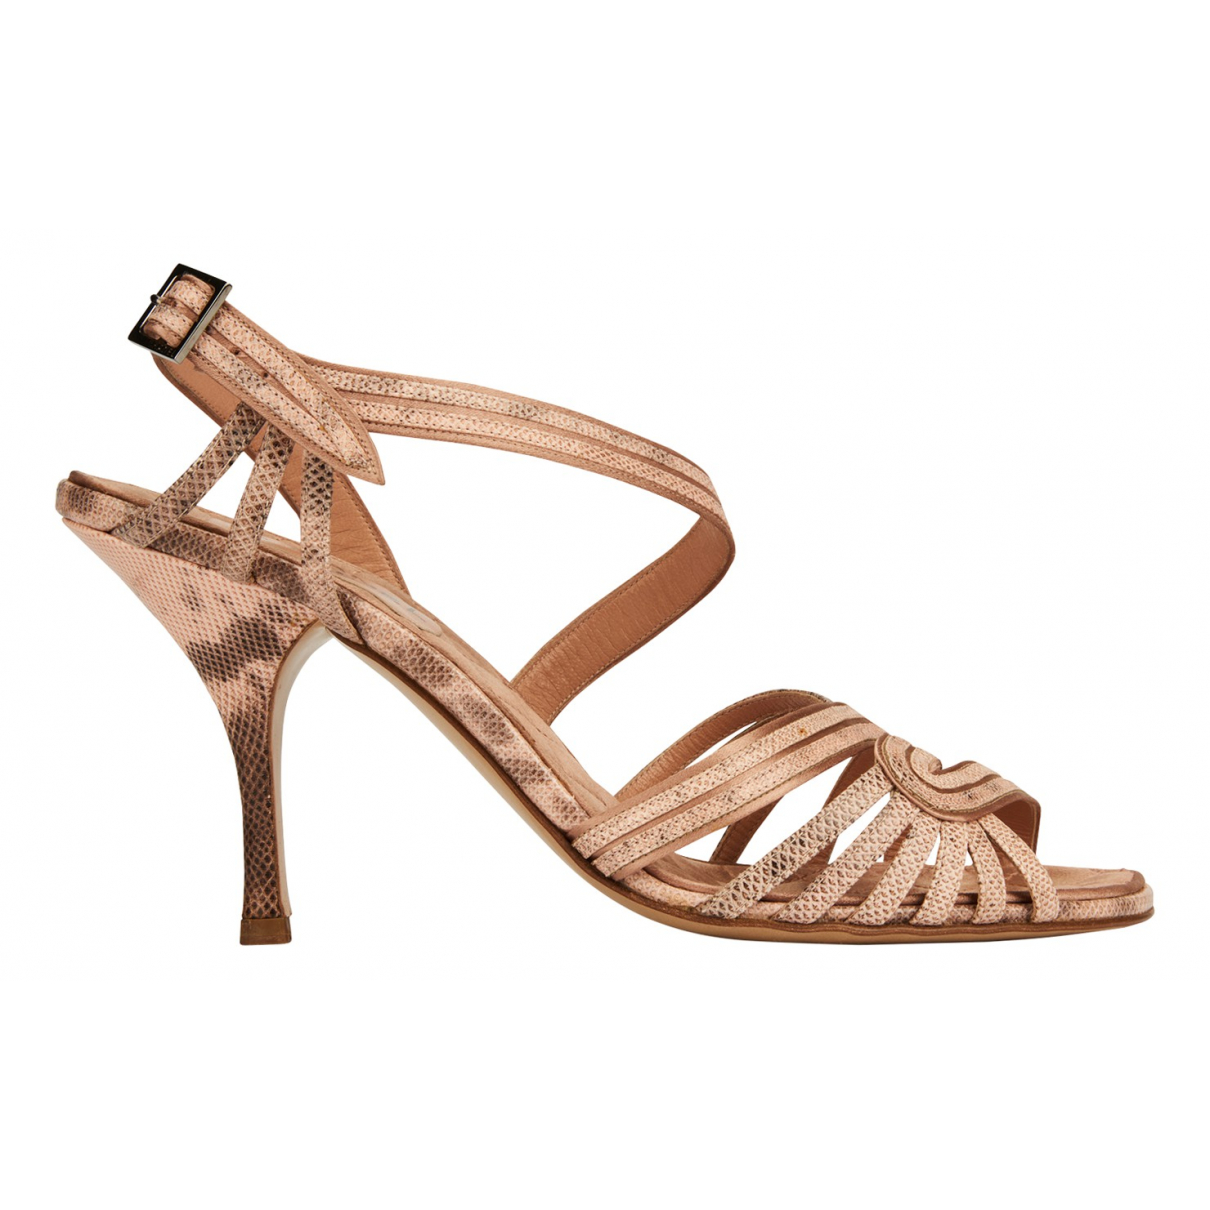 Chanel N Pink Leather Sandals for Women 7.5 UK